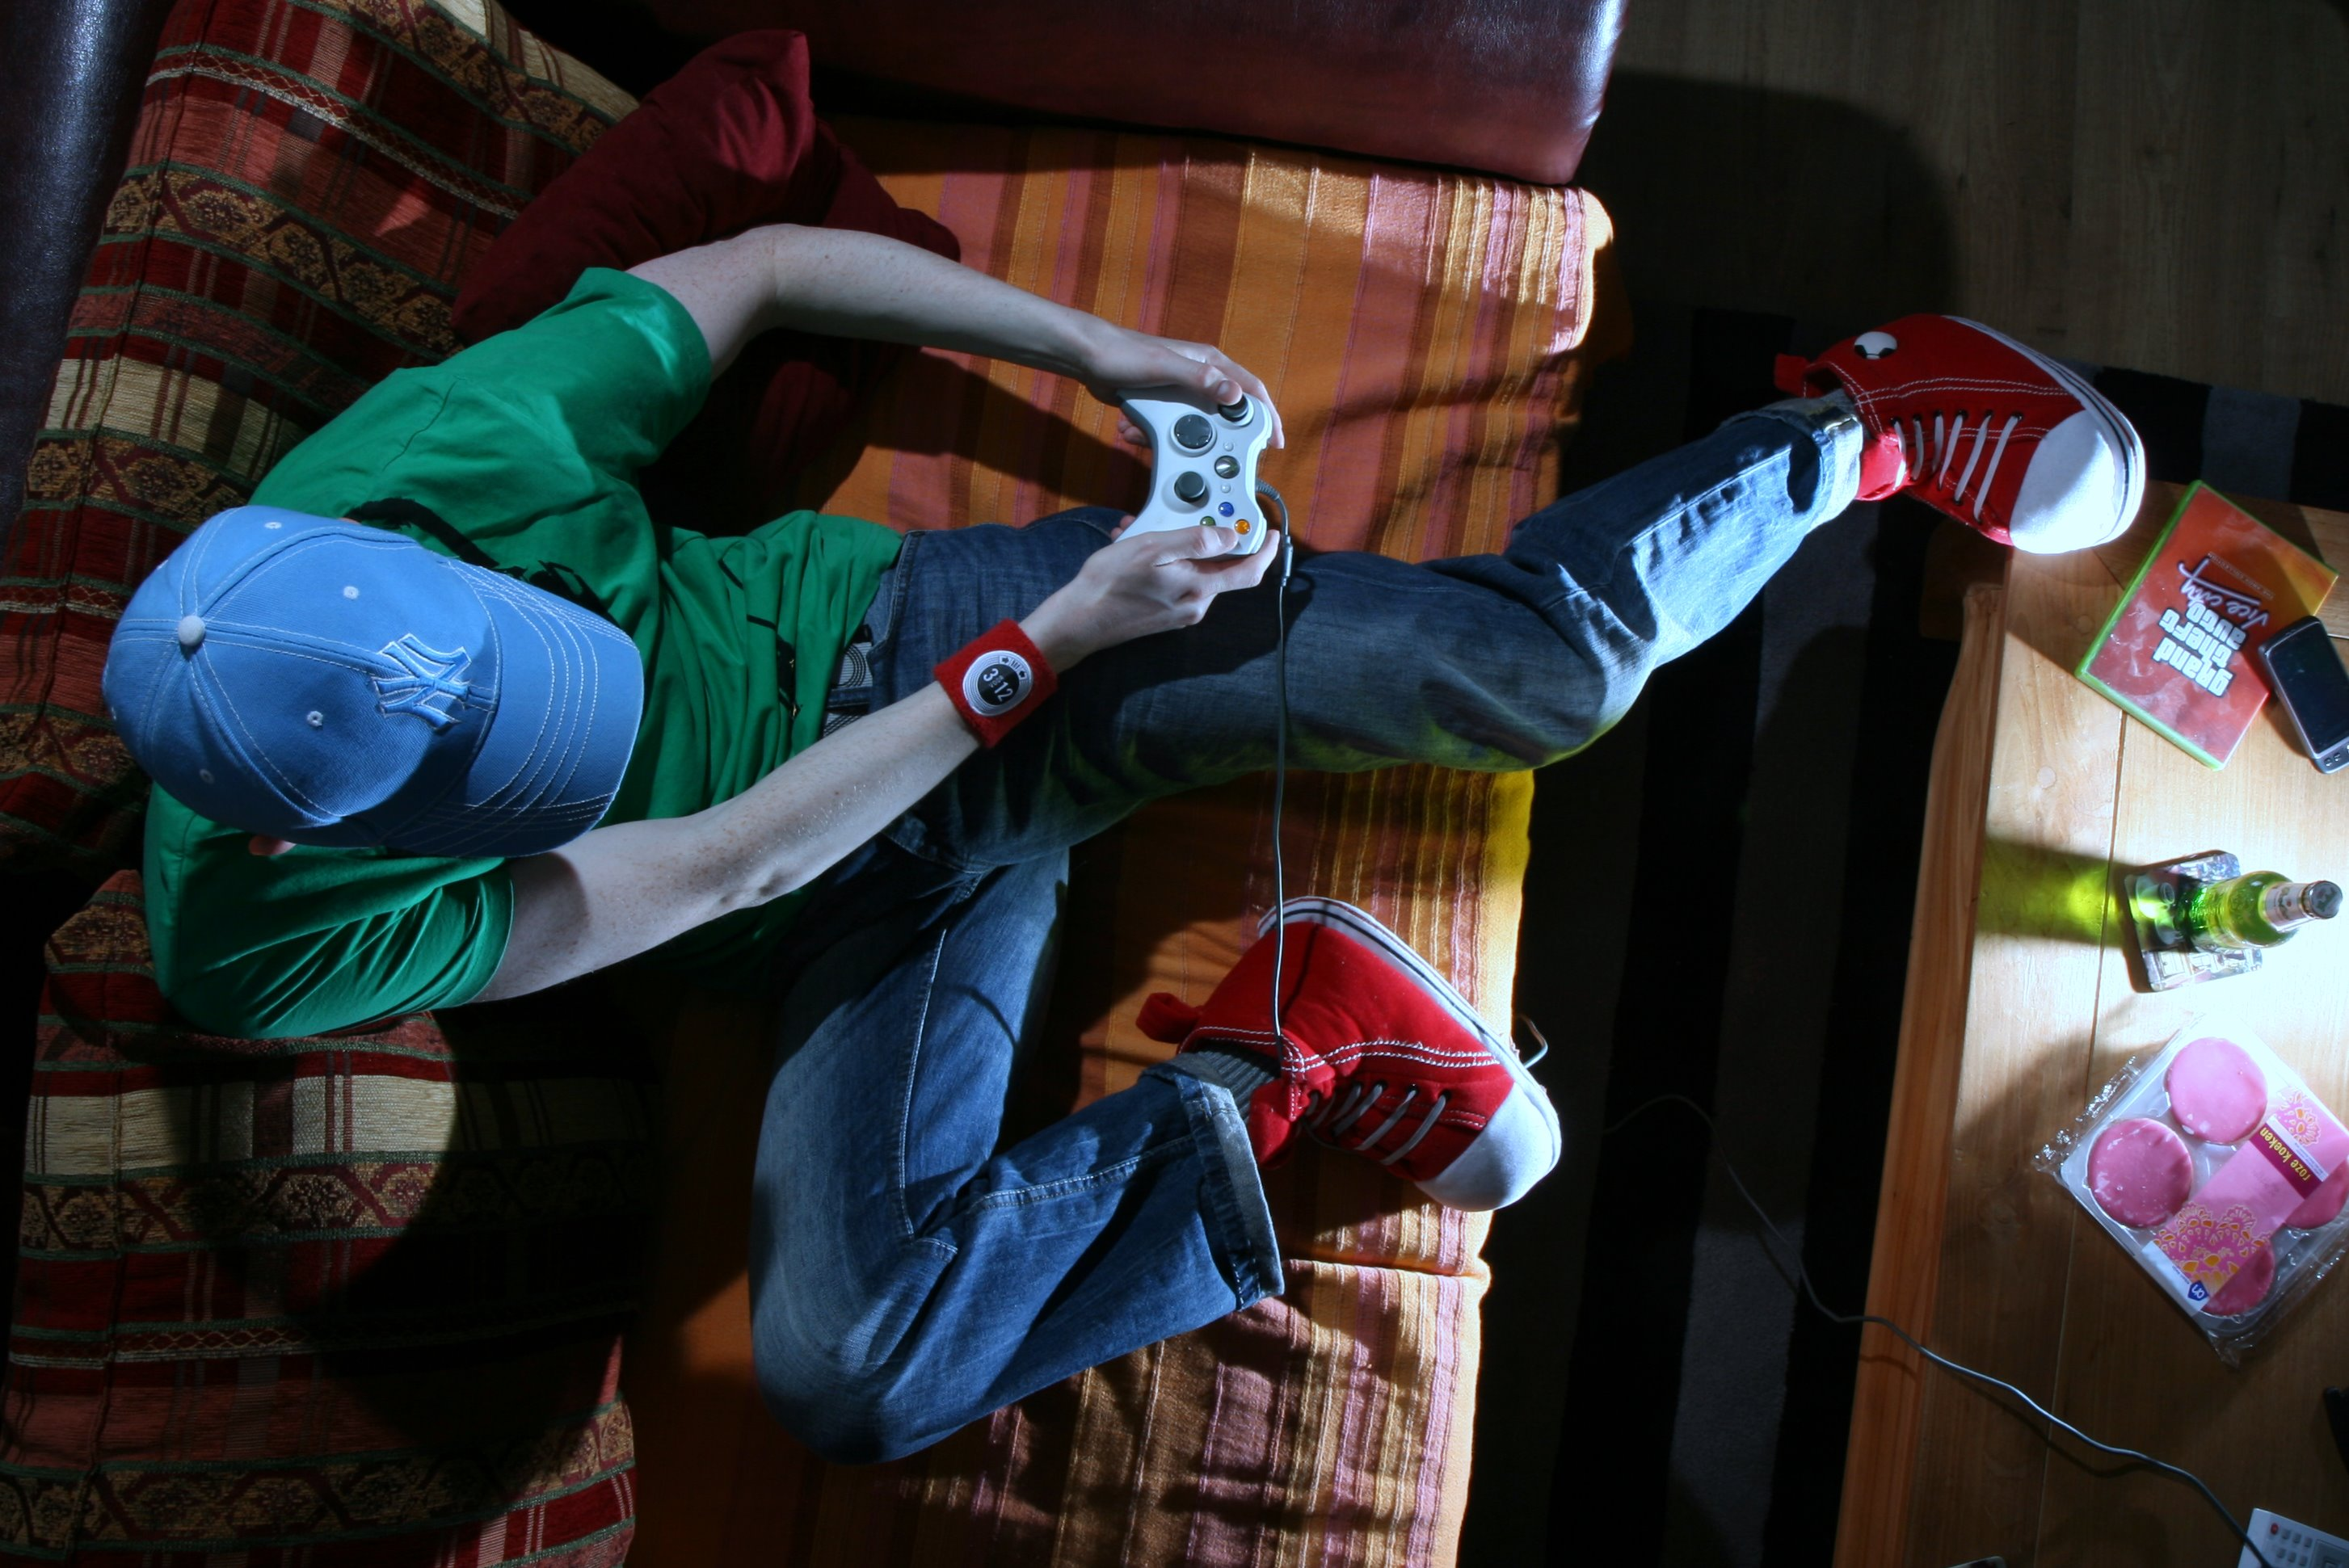 Do Video Games Make People More Violent? (Science-Based)